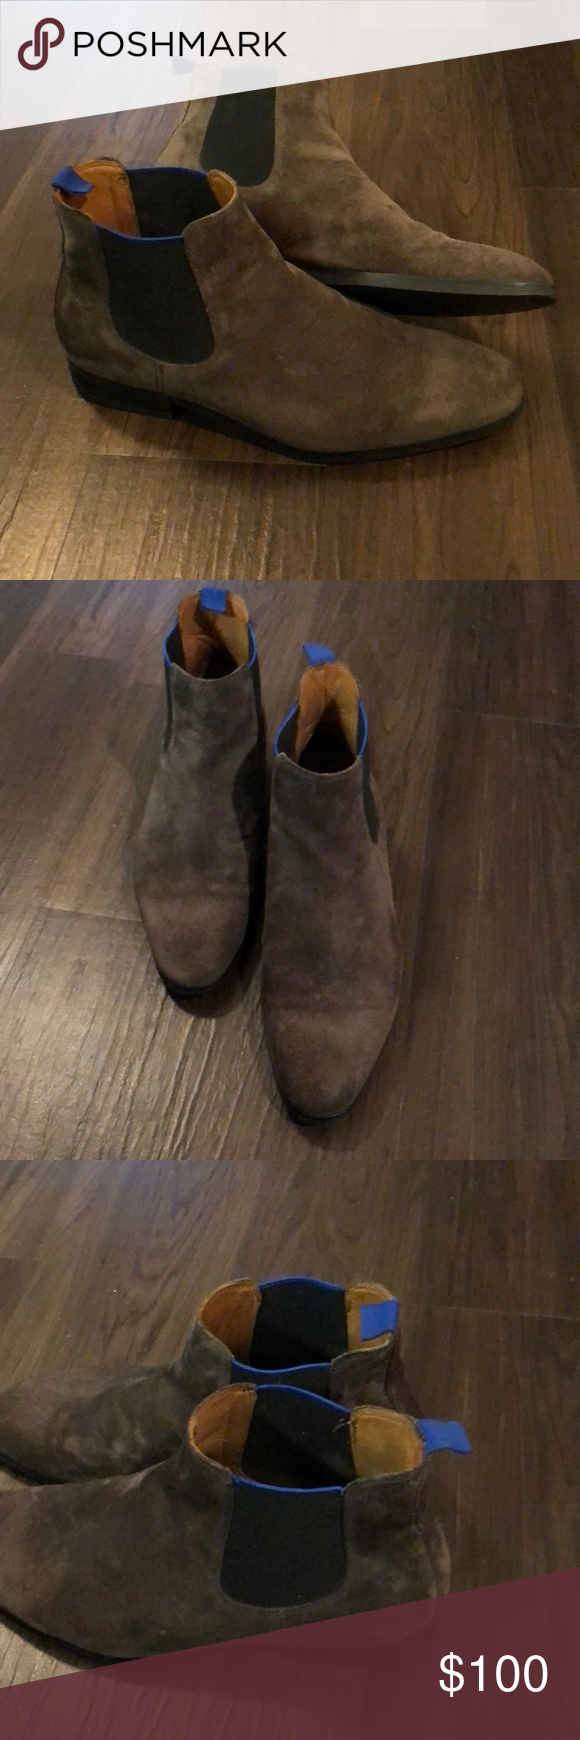 96ef9e34bd8 Broletto mens low-cut boots Low-cut boots made by Broletto. Only worn once  great condition and very comfortable. The boots are Gray with blue trim.